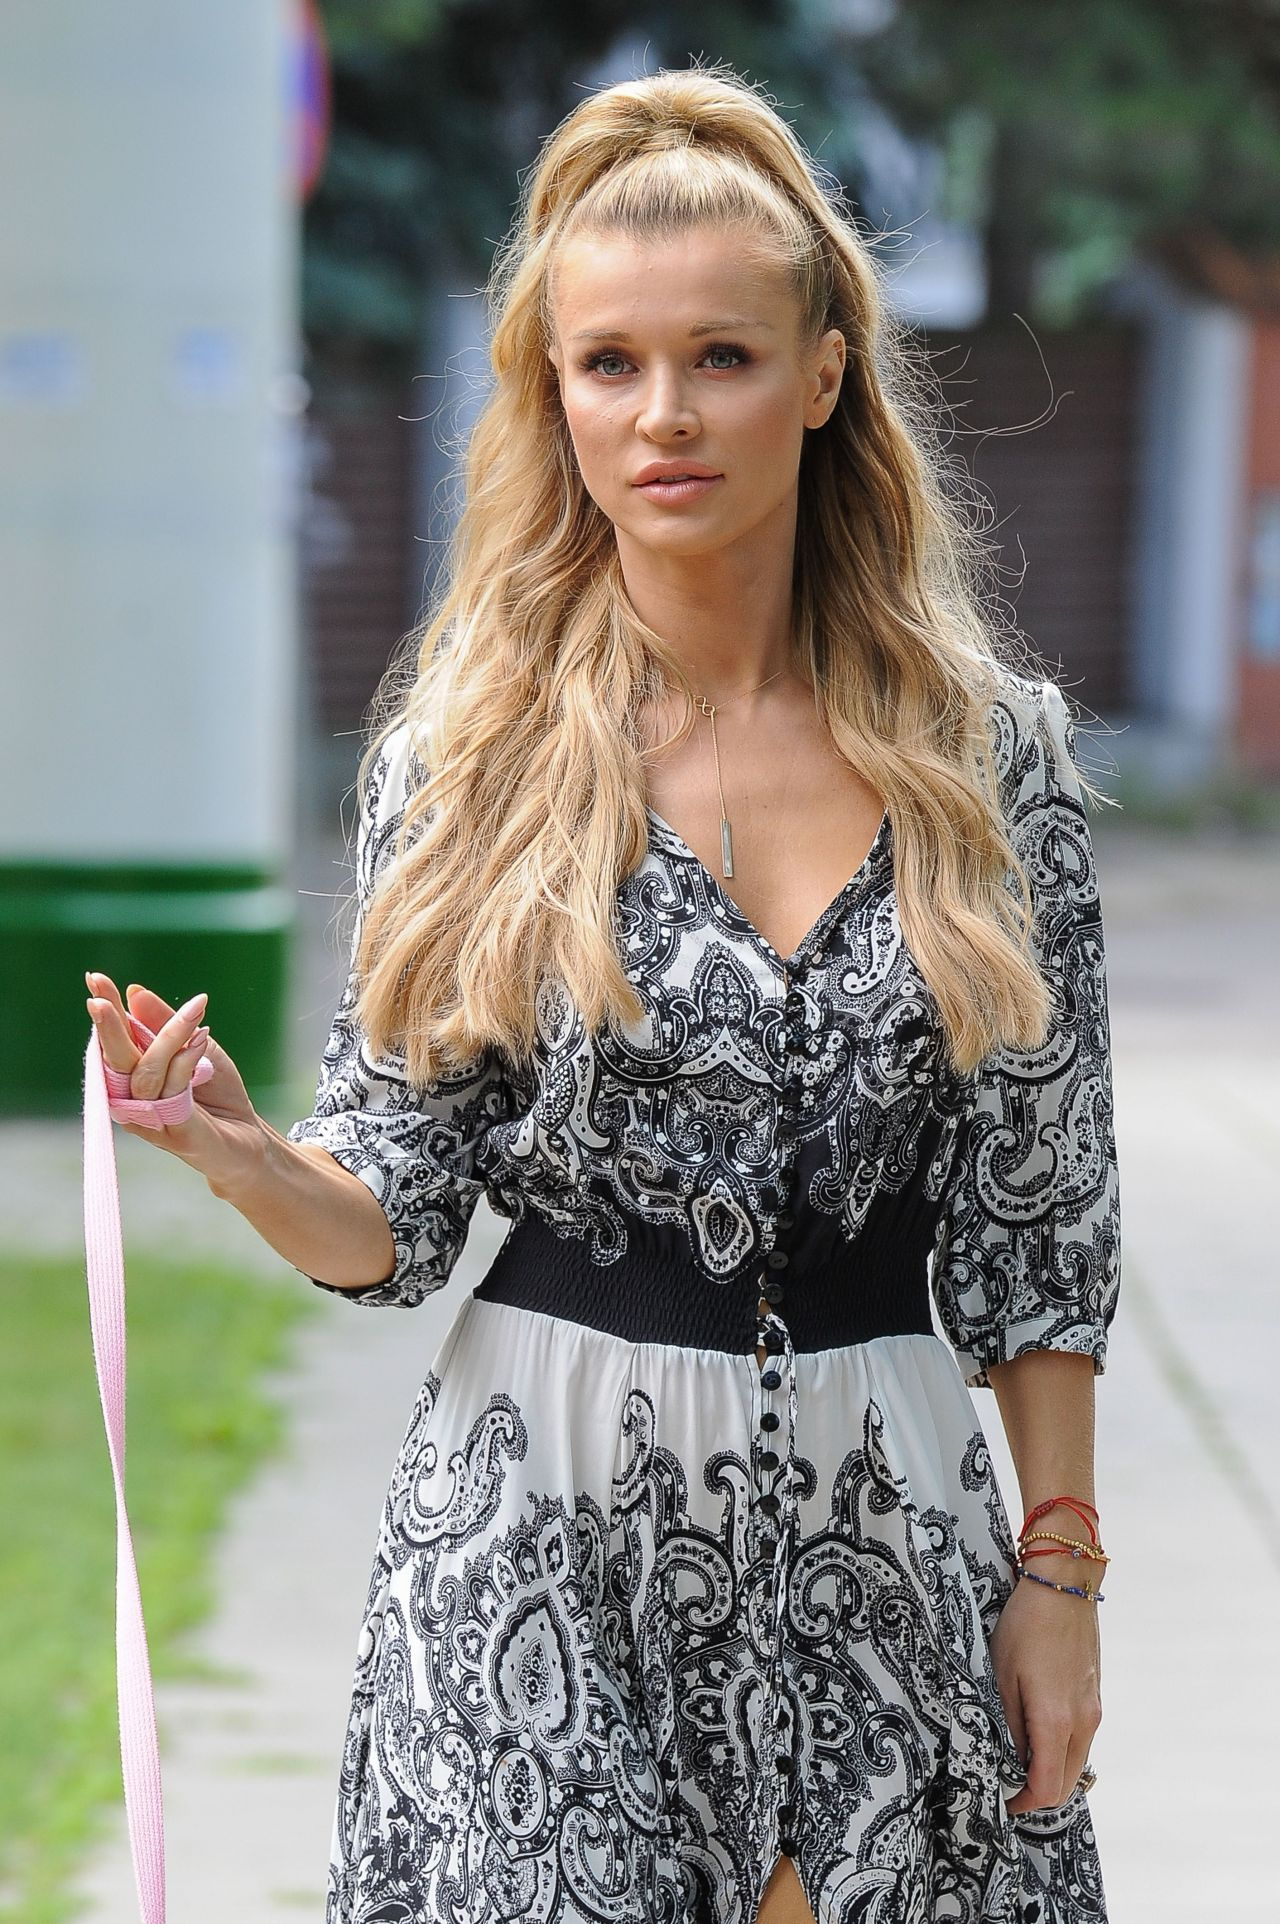 photo Joanna Krupa Poland